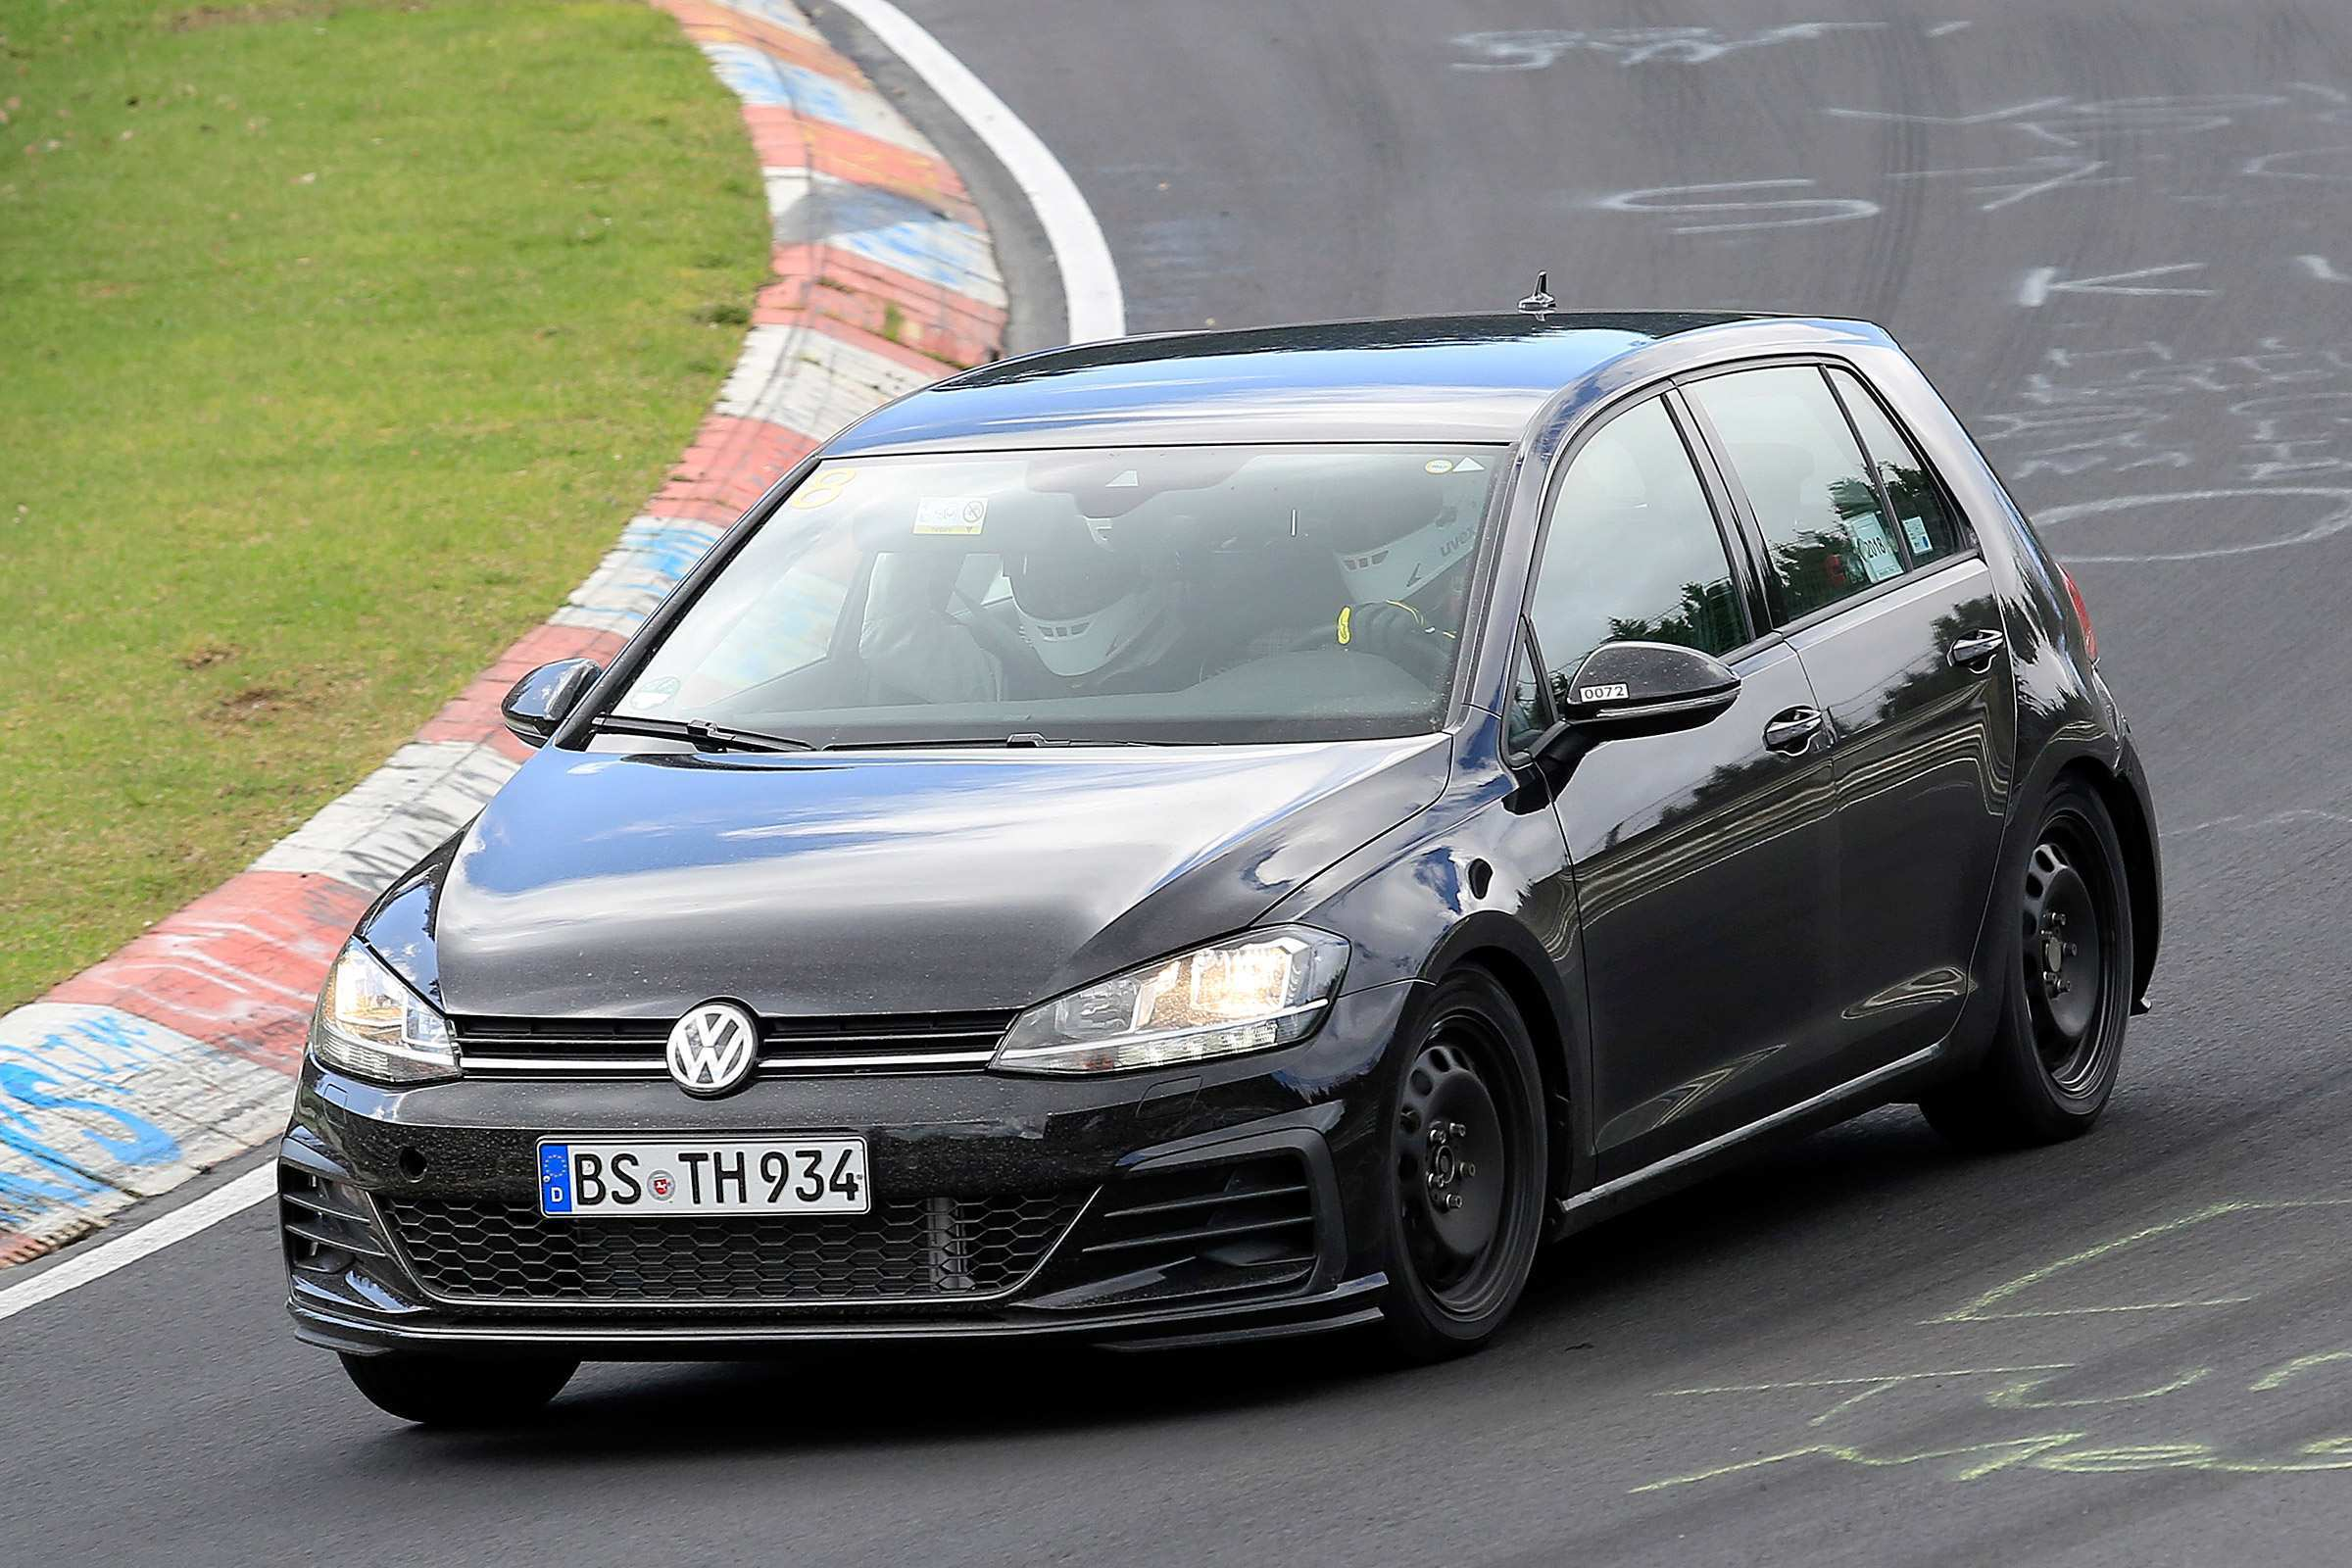 97 The 2019 Vw Golf Mk8 Price and Review with 2019 Vw Golf Mk8